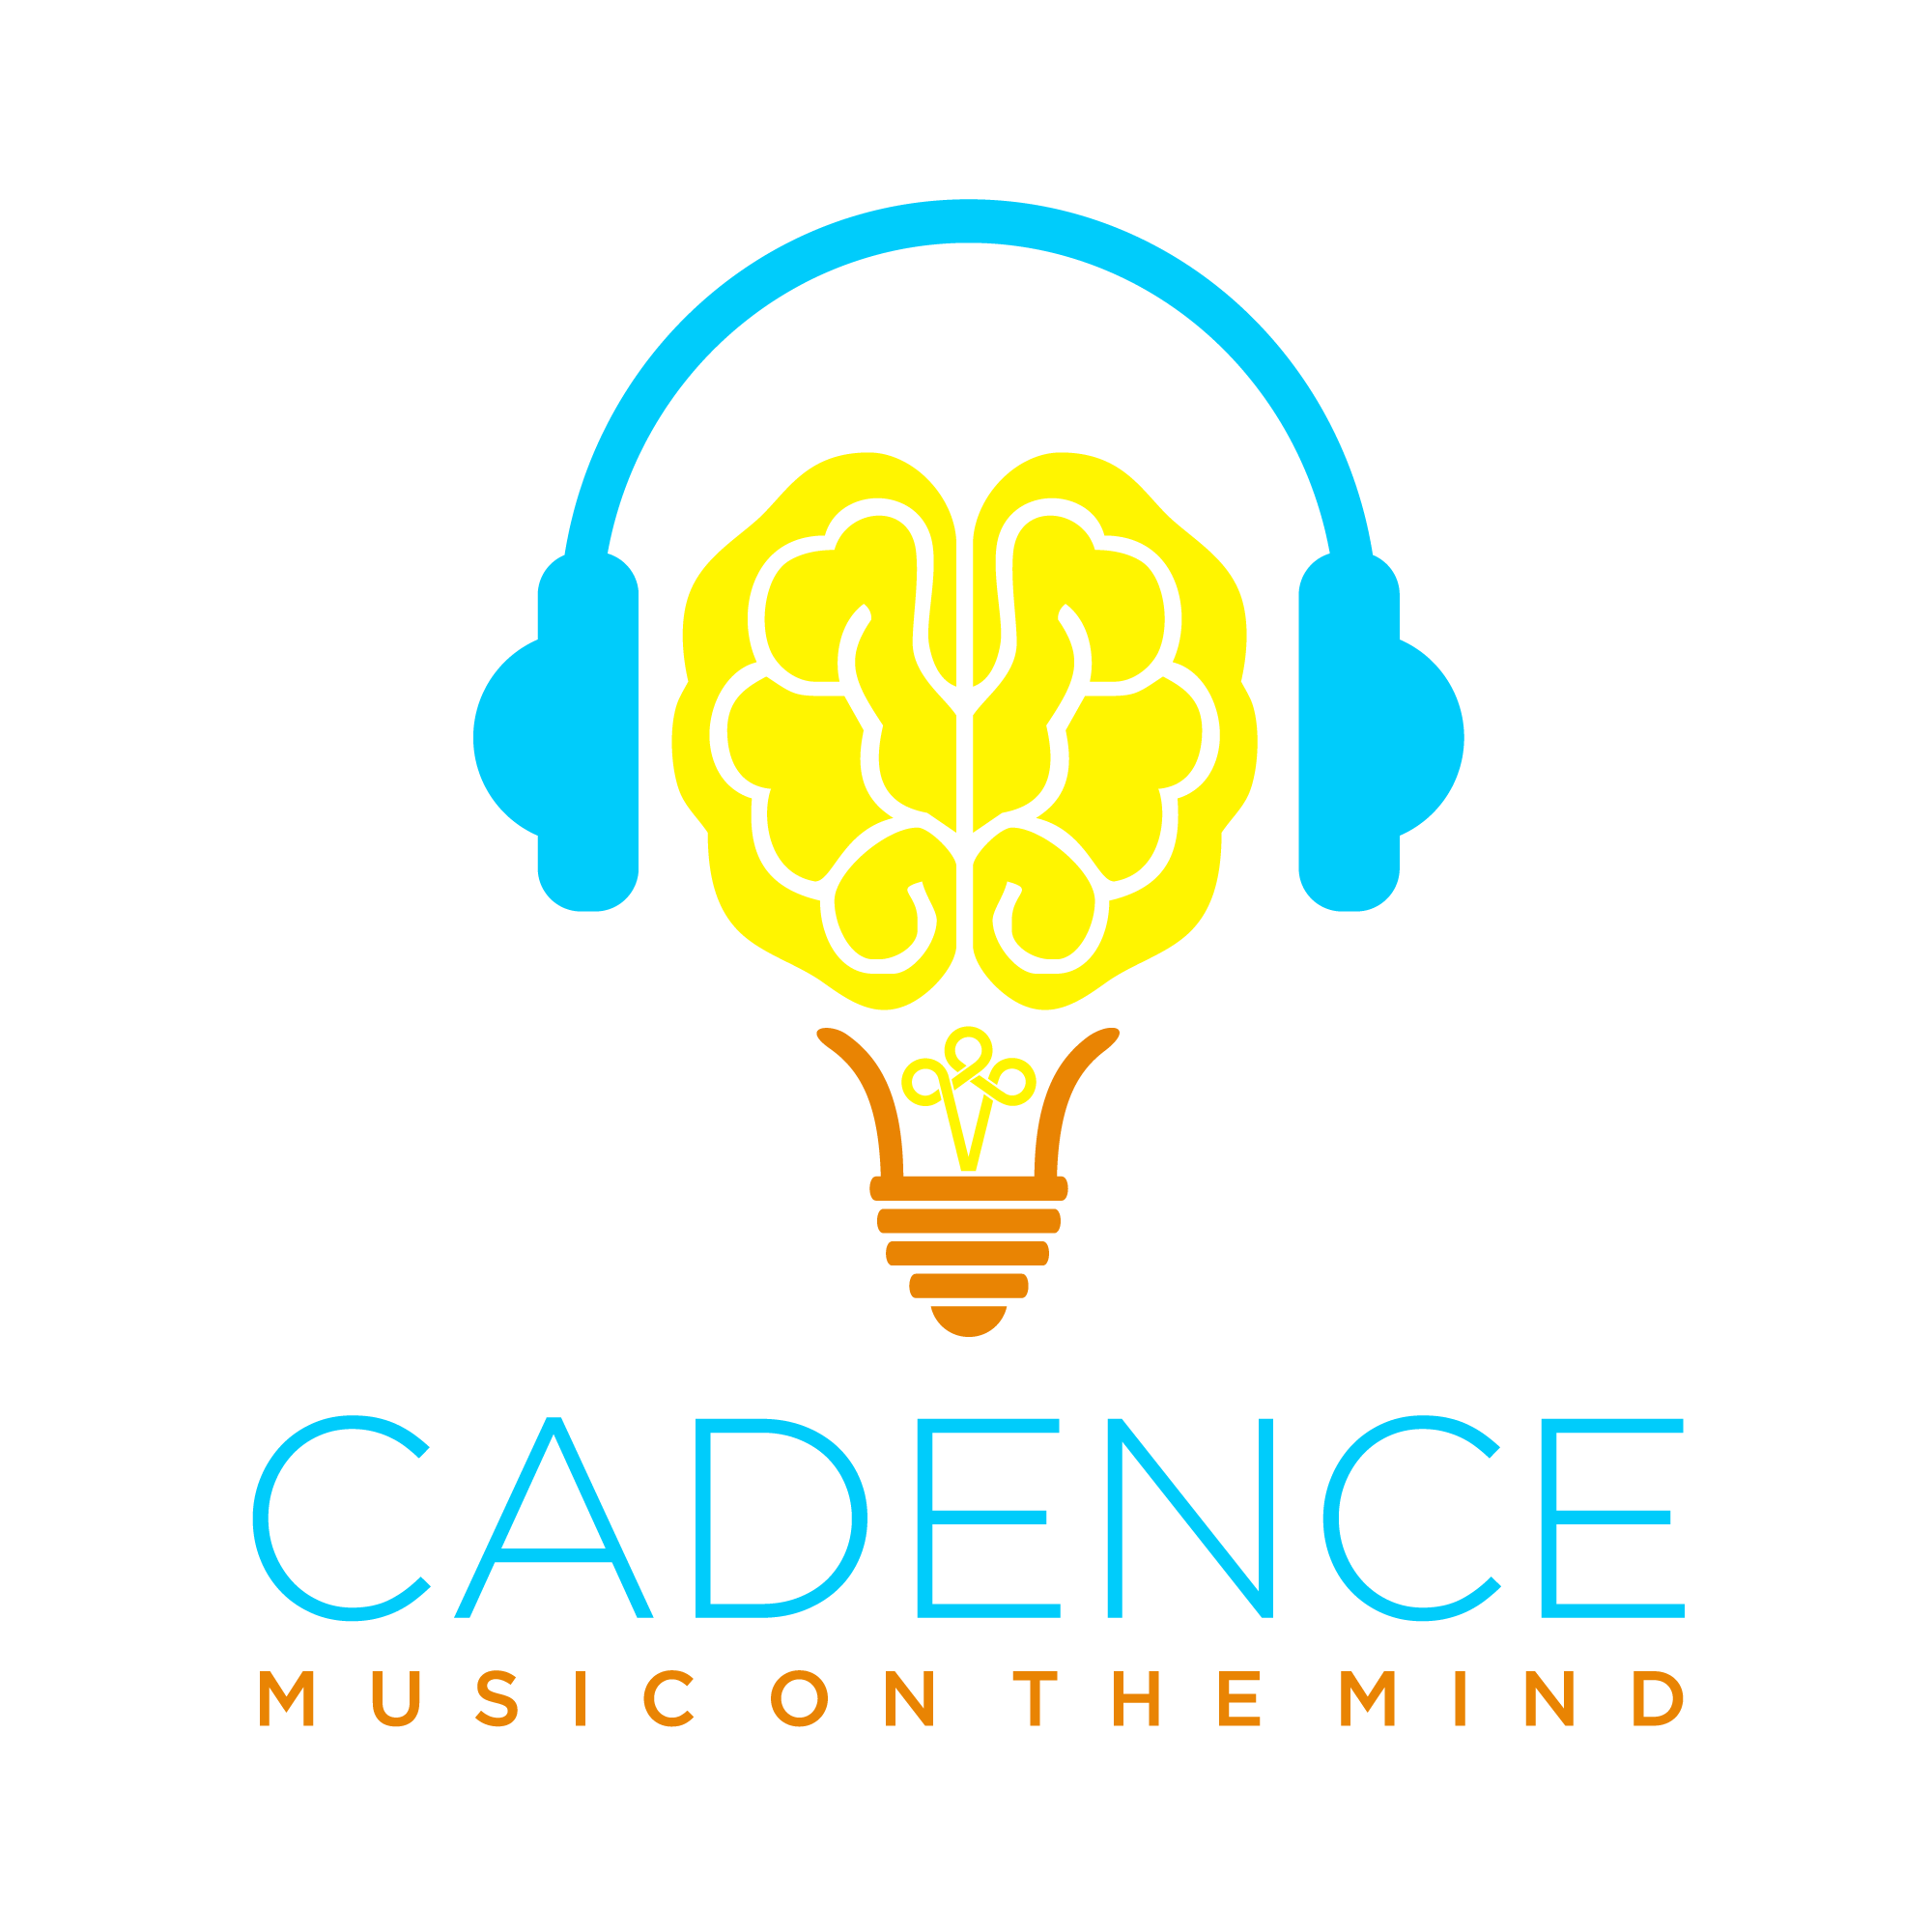 S02 Episode 06: The Case of the Autistic Savant: Unleashing Extraordinary Musical Ability